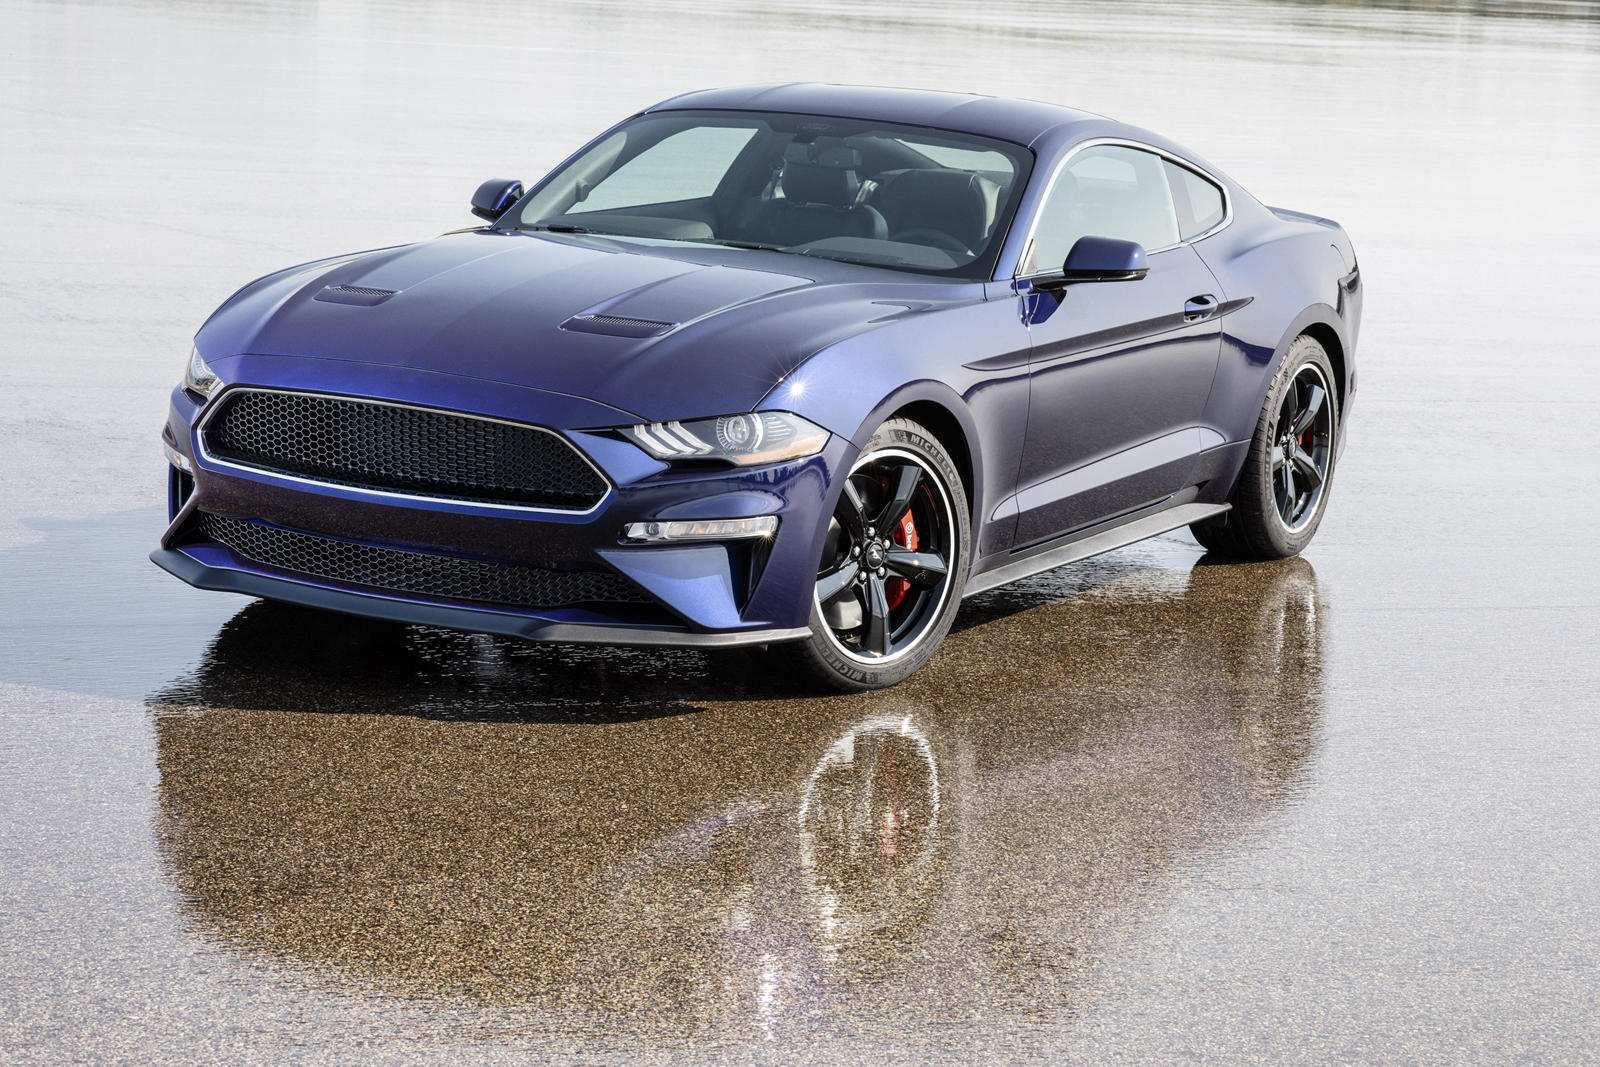 47 A 2020 Ford Mustang Gt Wallpaper